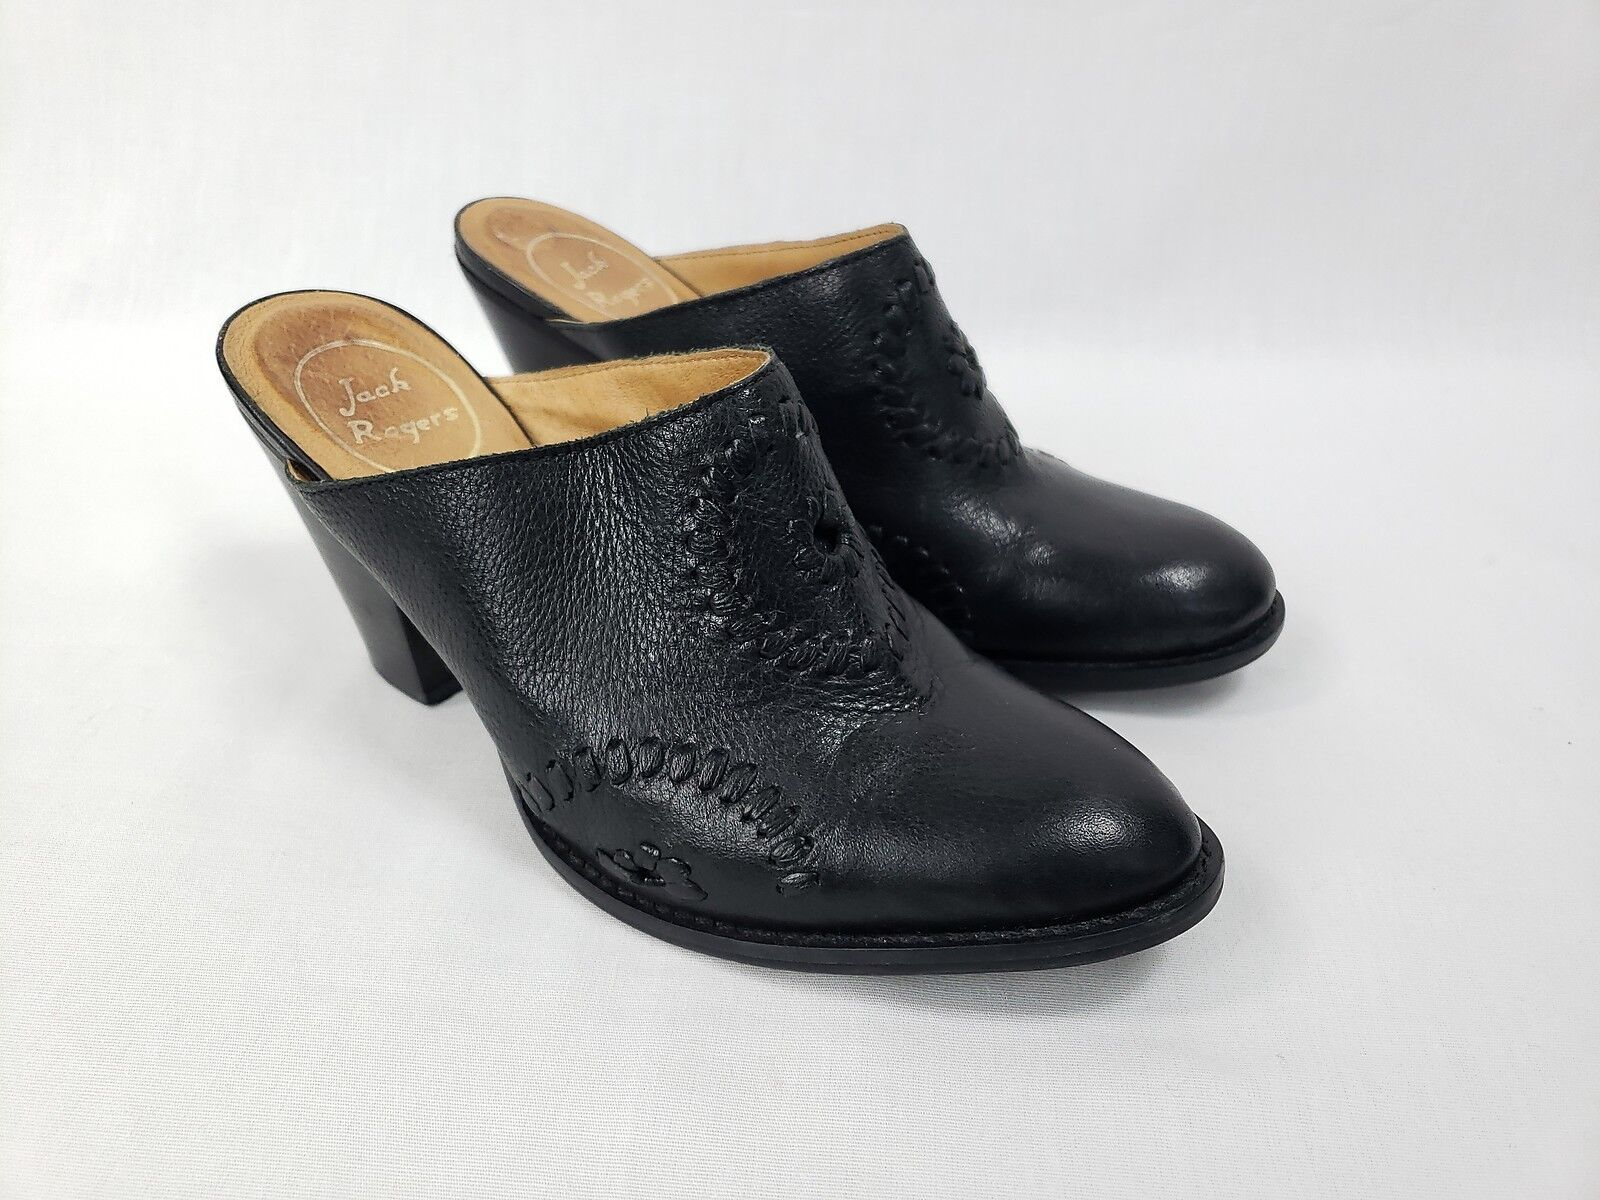 economico online JACK ROGERS ROGERS ROGERS Marley nero Leather Stitched Medallion Detail Mules scarpe sz 7.5  ti aspetto